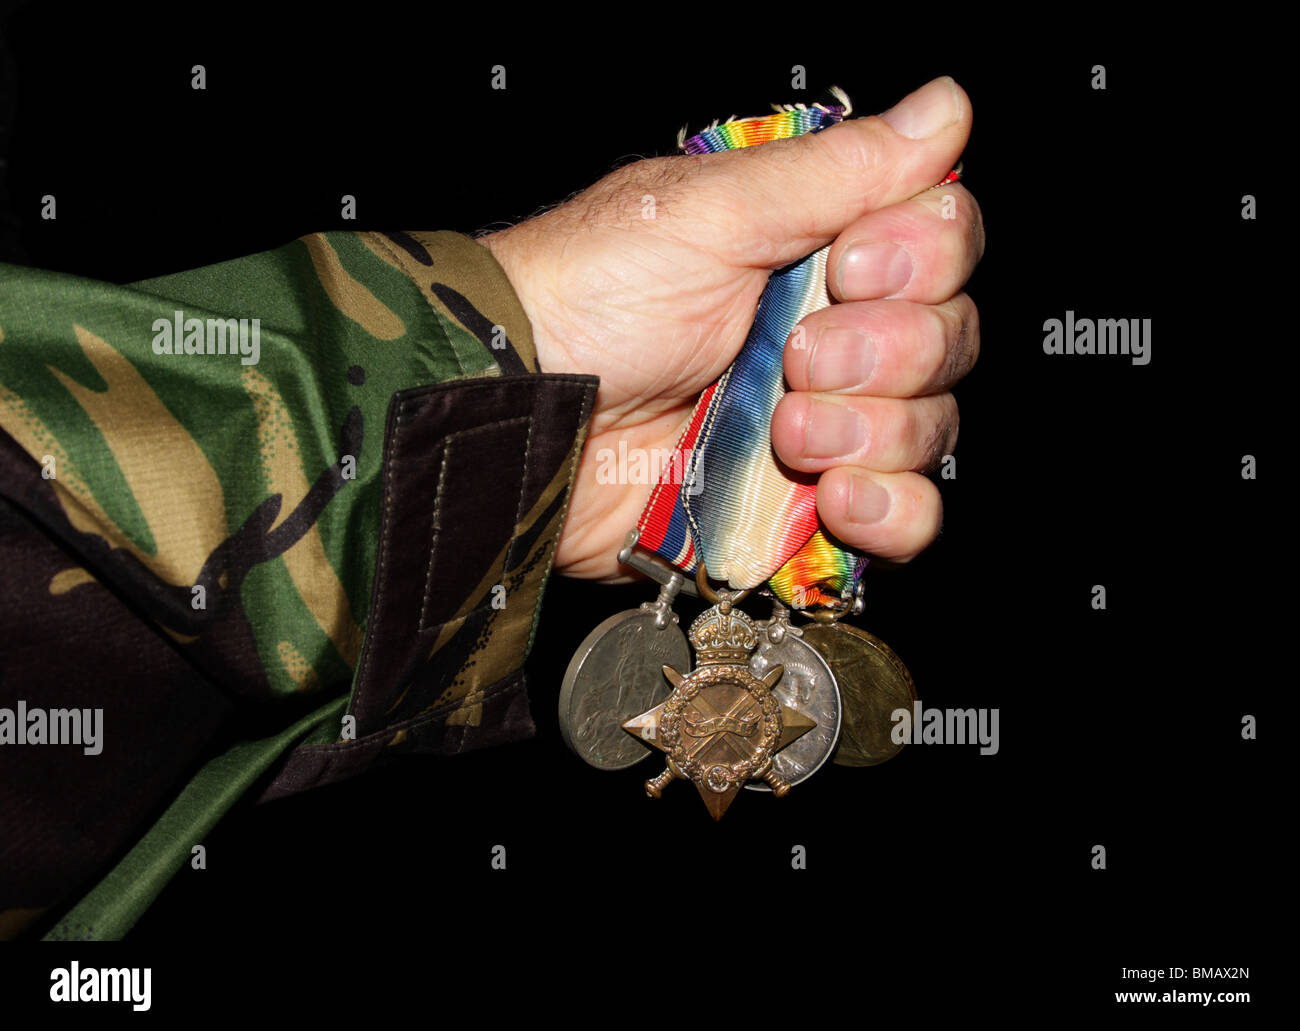 Collection of medals grasped in a soldiers hand. - Stock Image